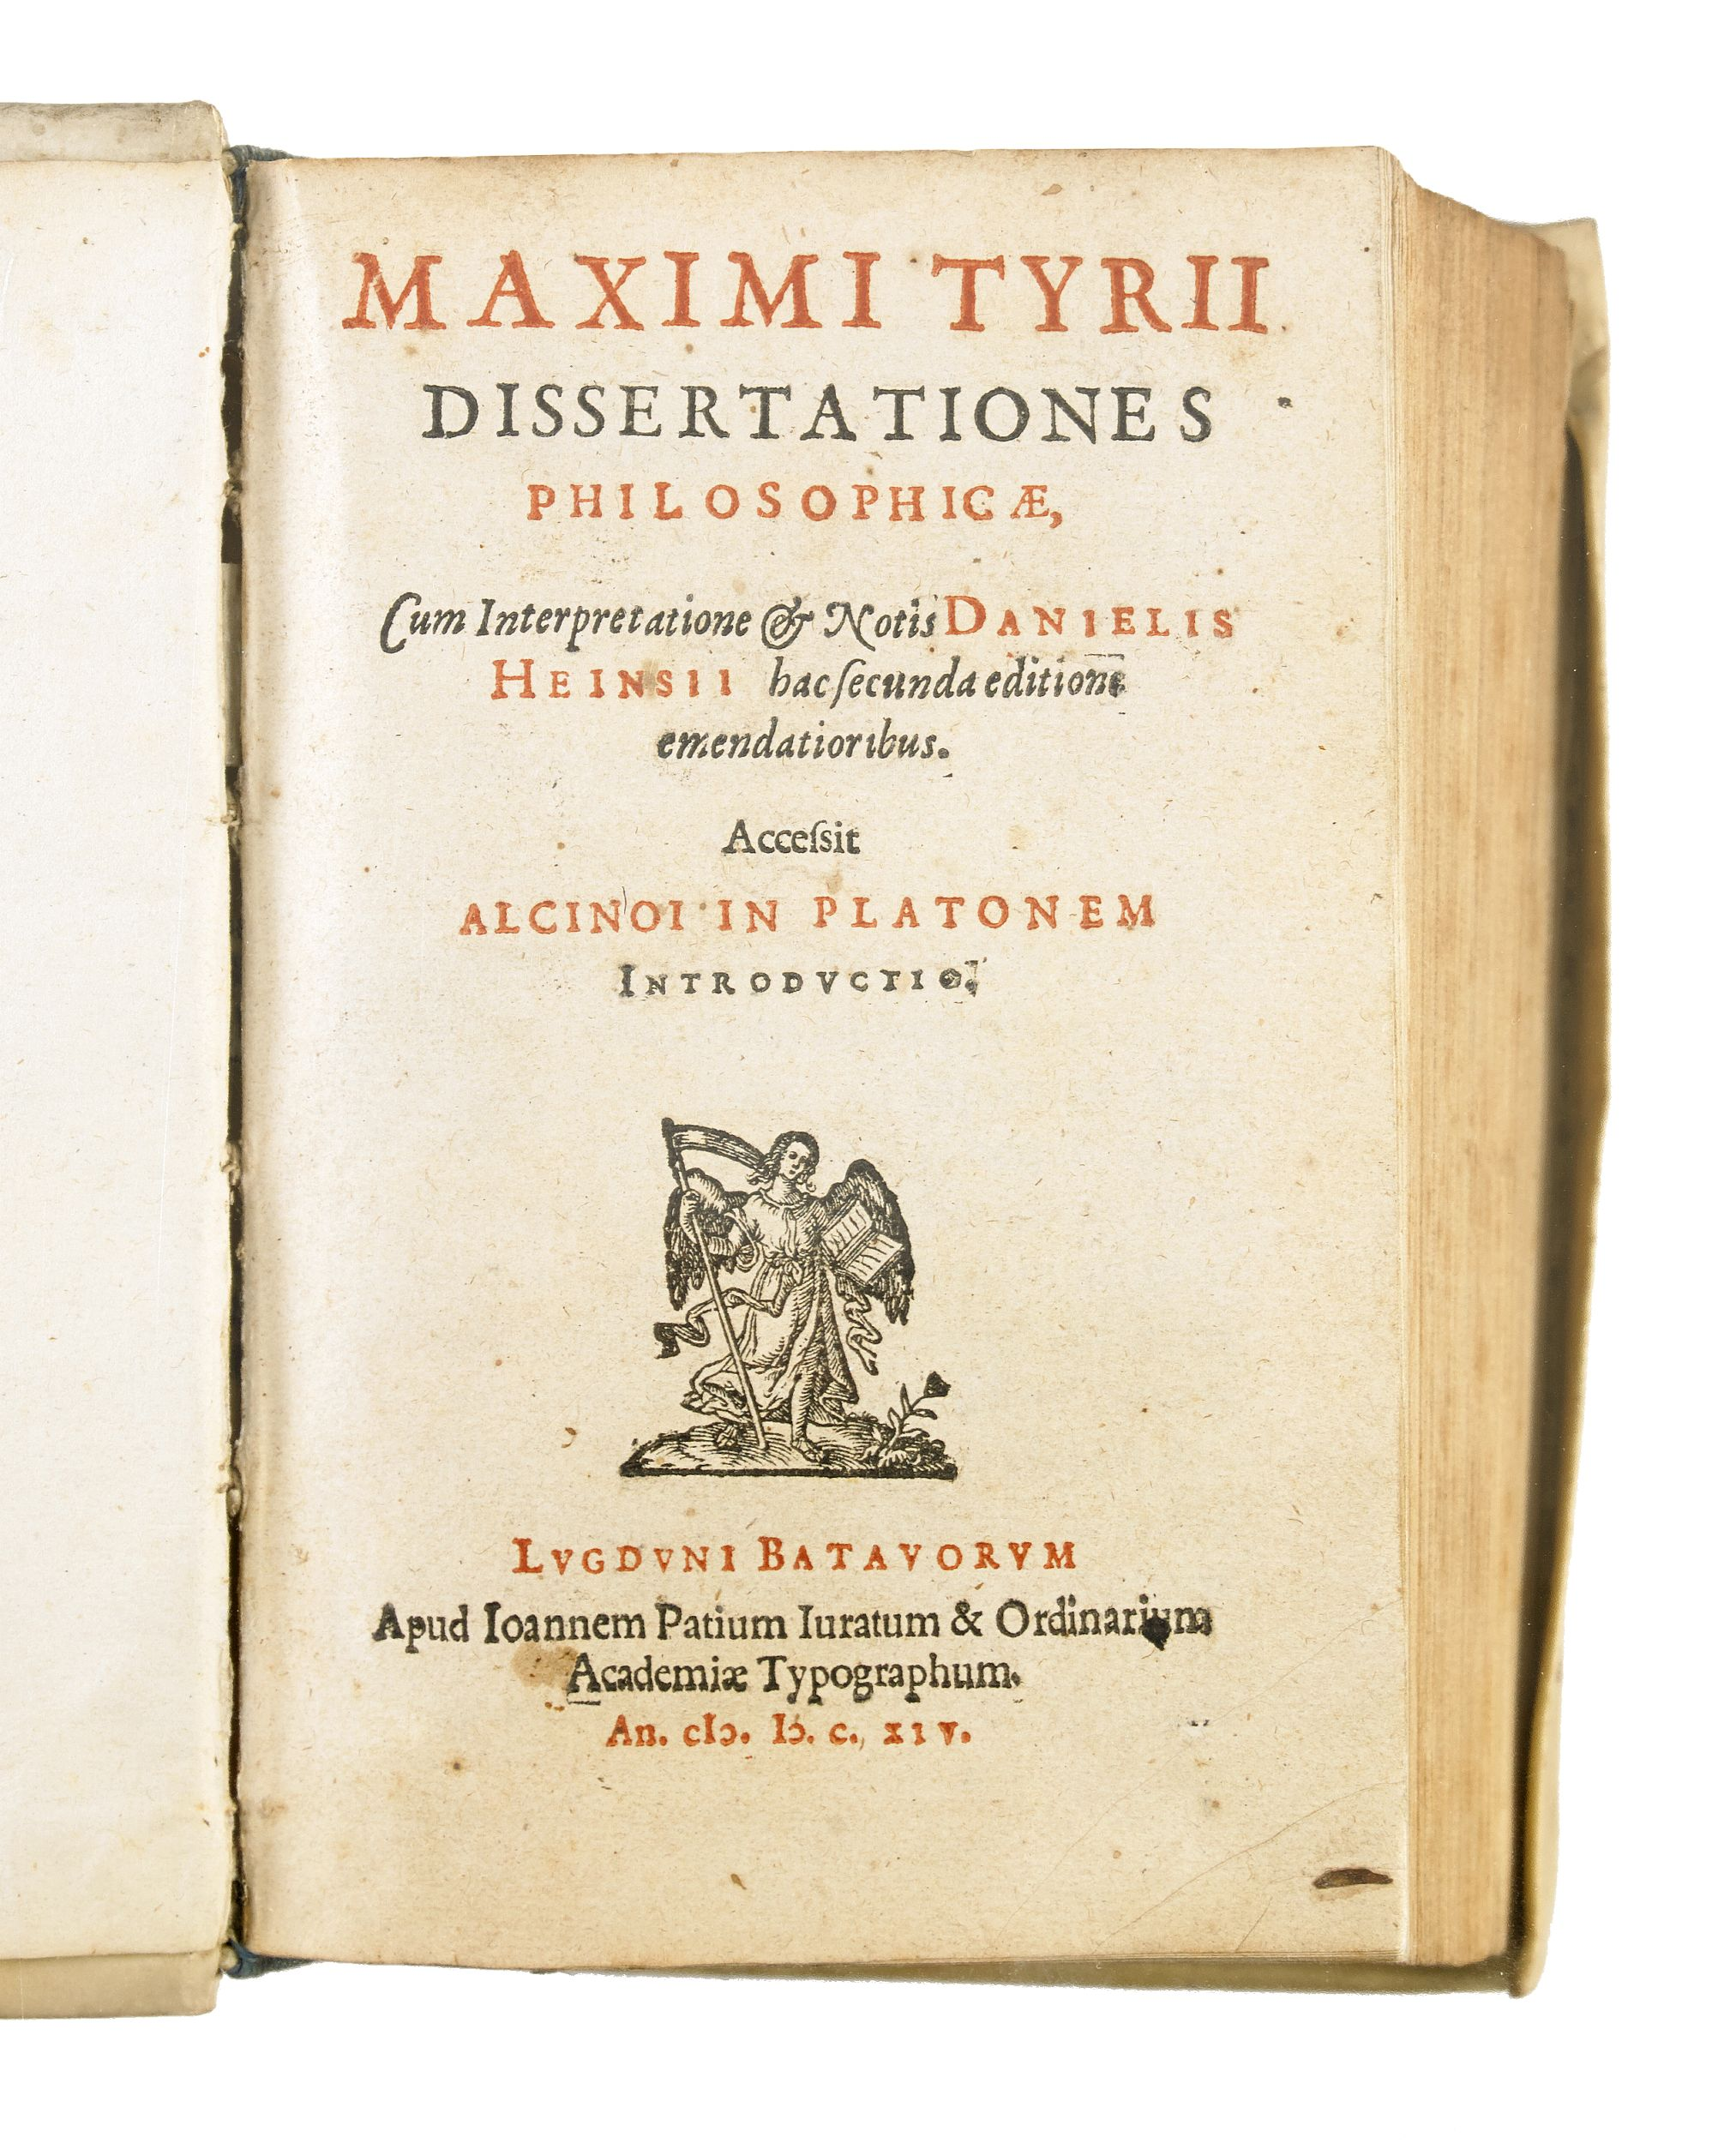 The philosophical writings of Maximus Tyrius